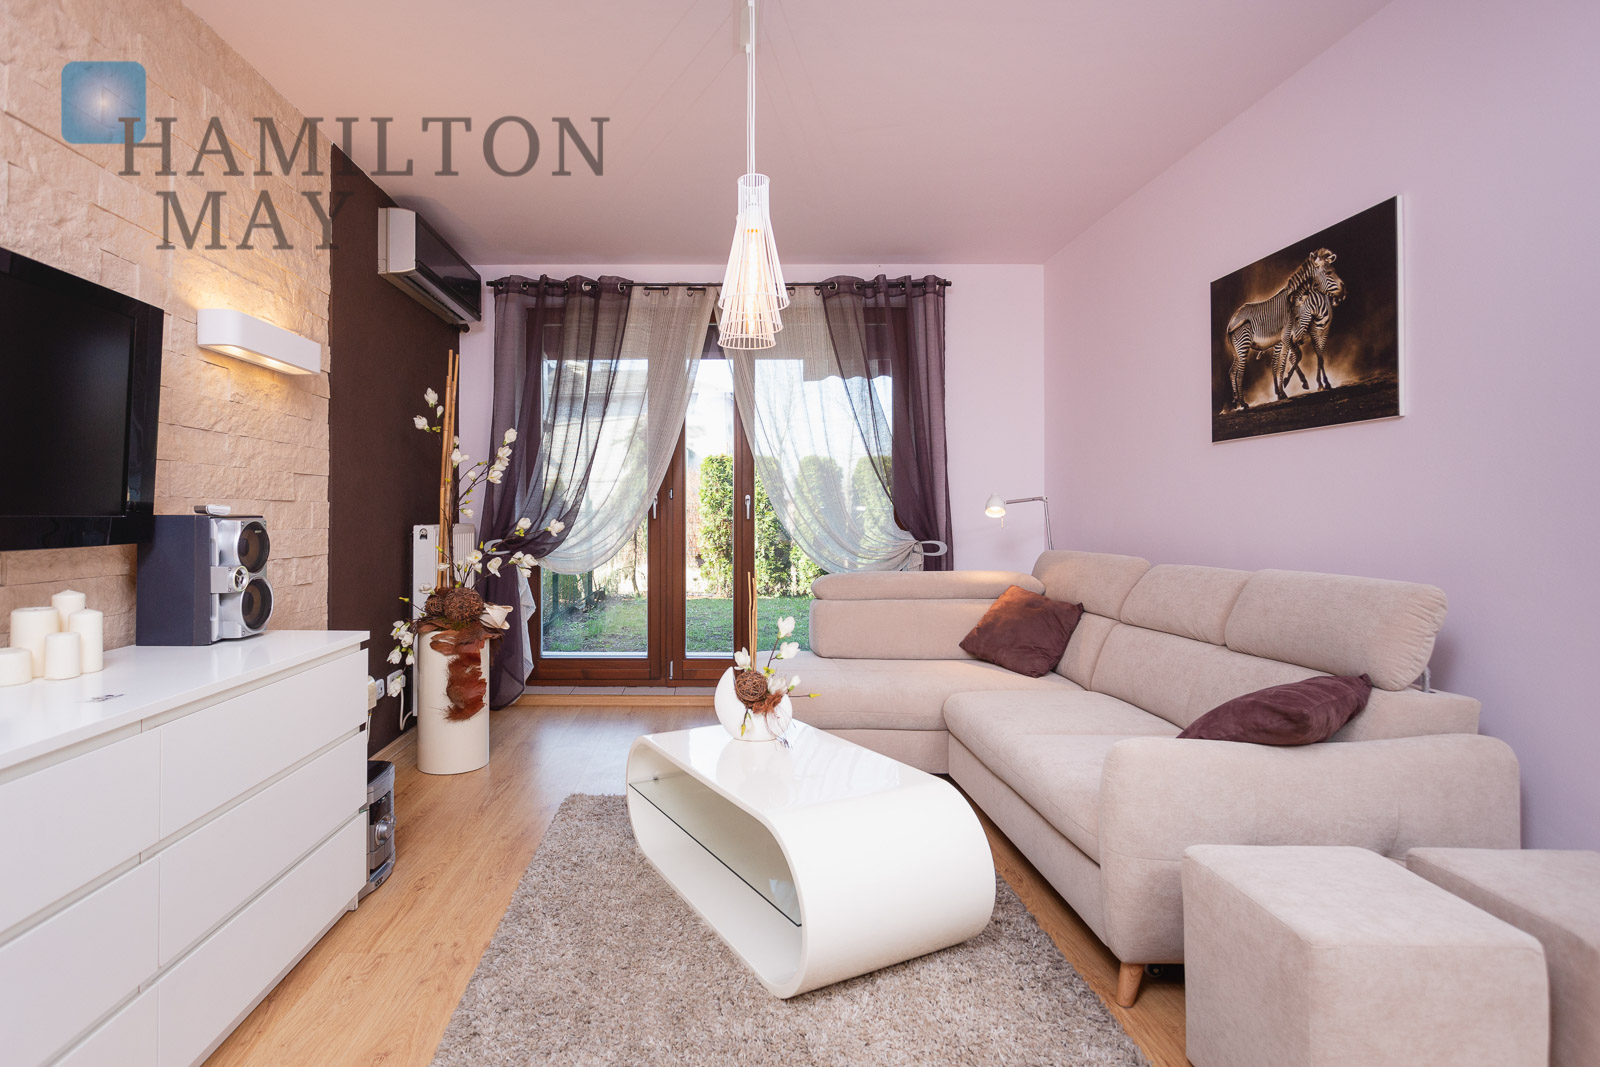 Cozy, 1-bedroom apartment with garden in a convenient location Krakow for rent